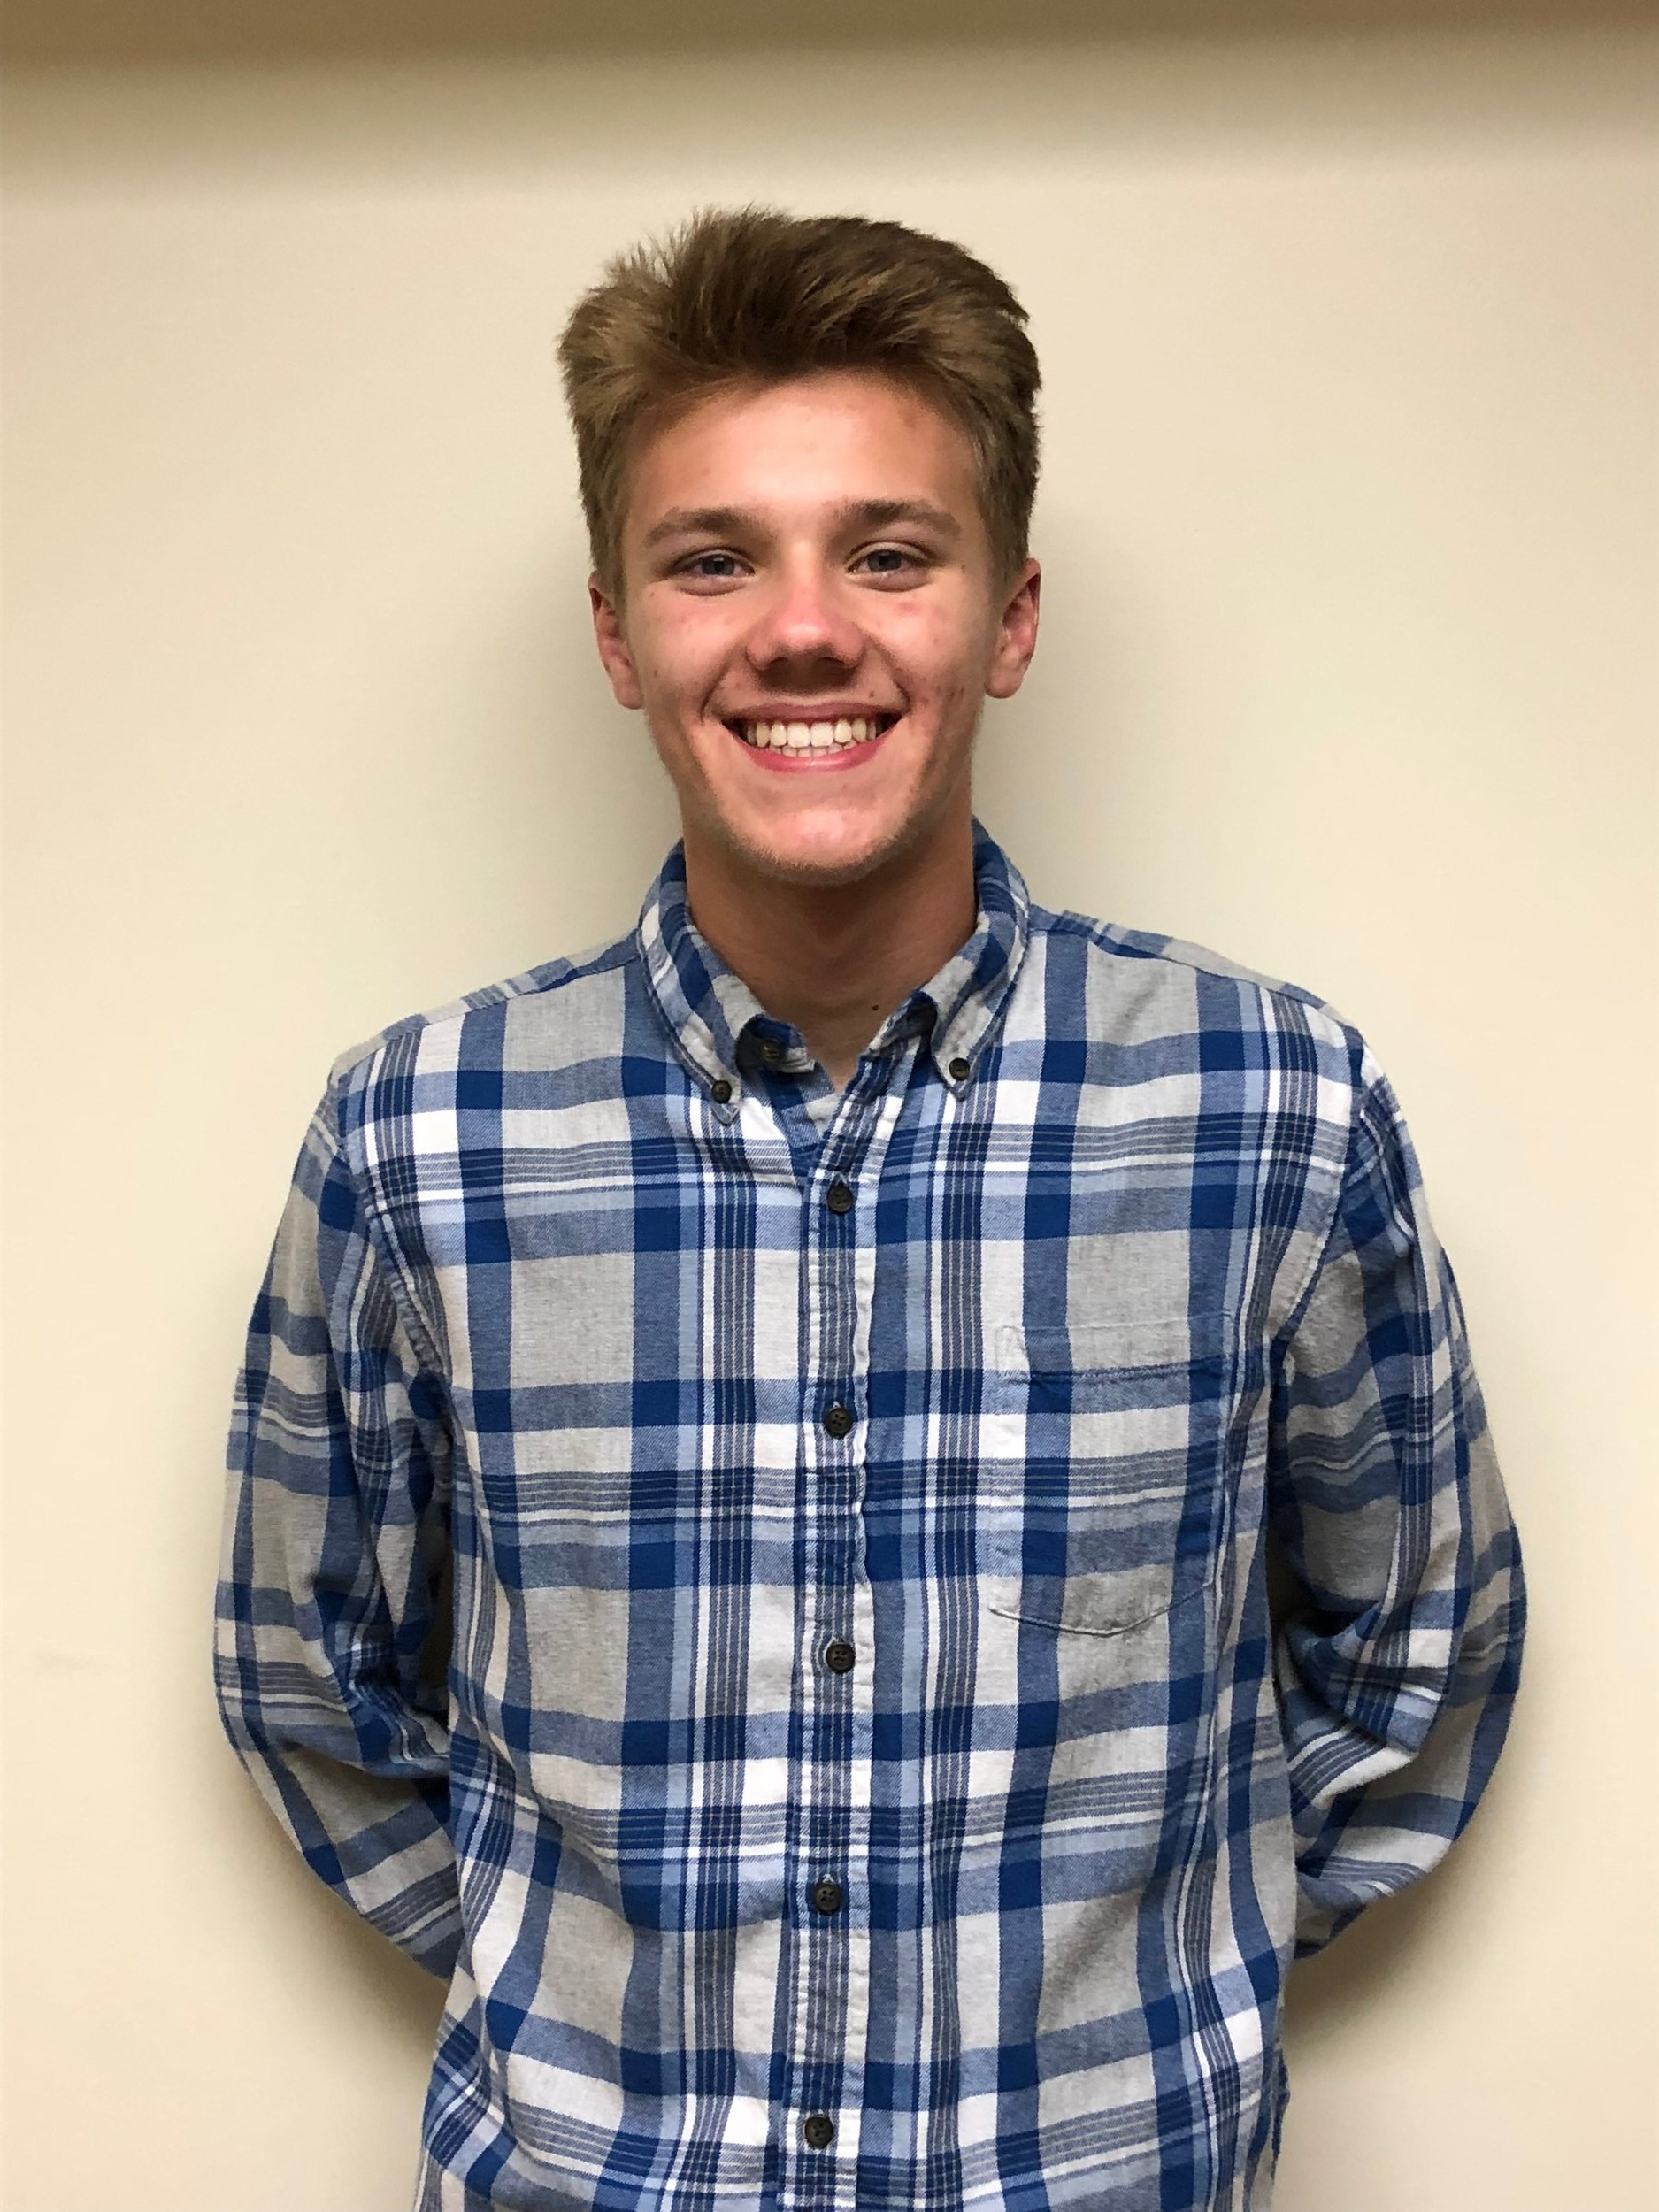 This week's #MNPSMVP is Barrett Boese – McGavock High School